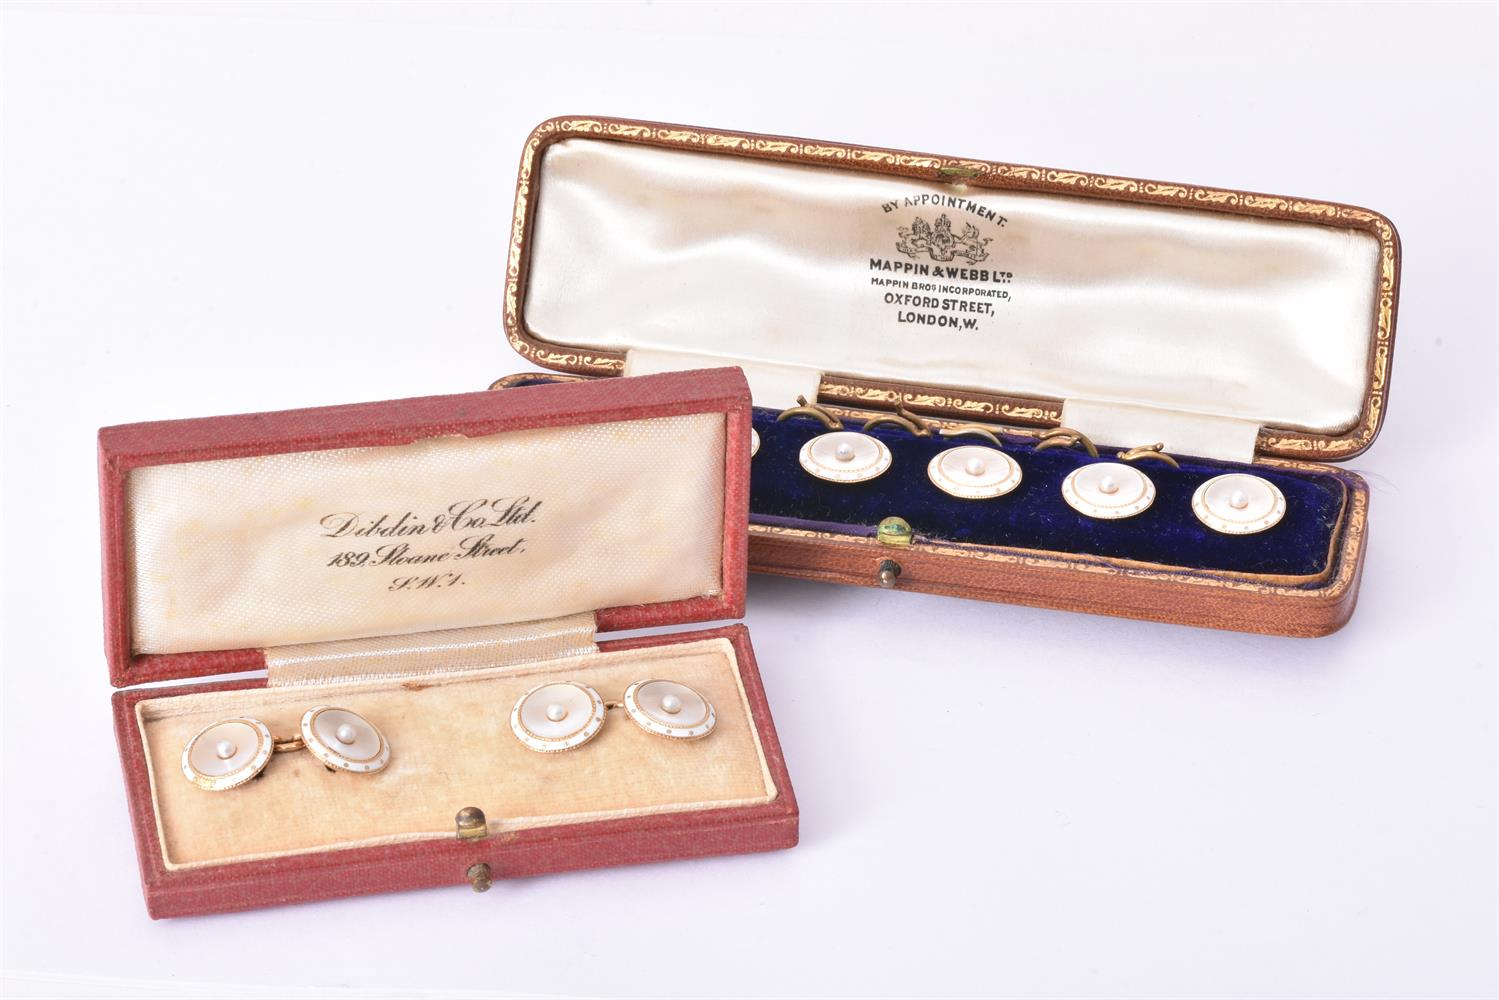 Y A pair of early 20th century mother of pearl and pearl cufflinks and six cased buttons